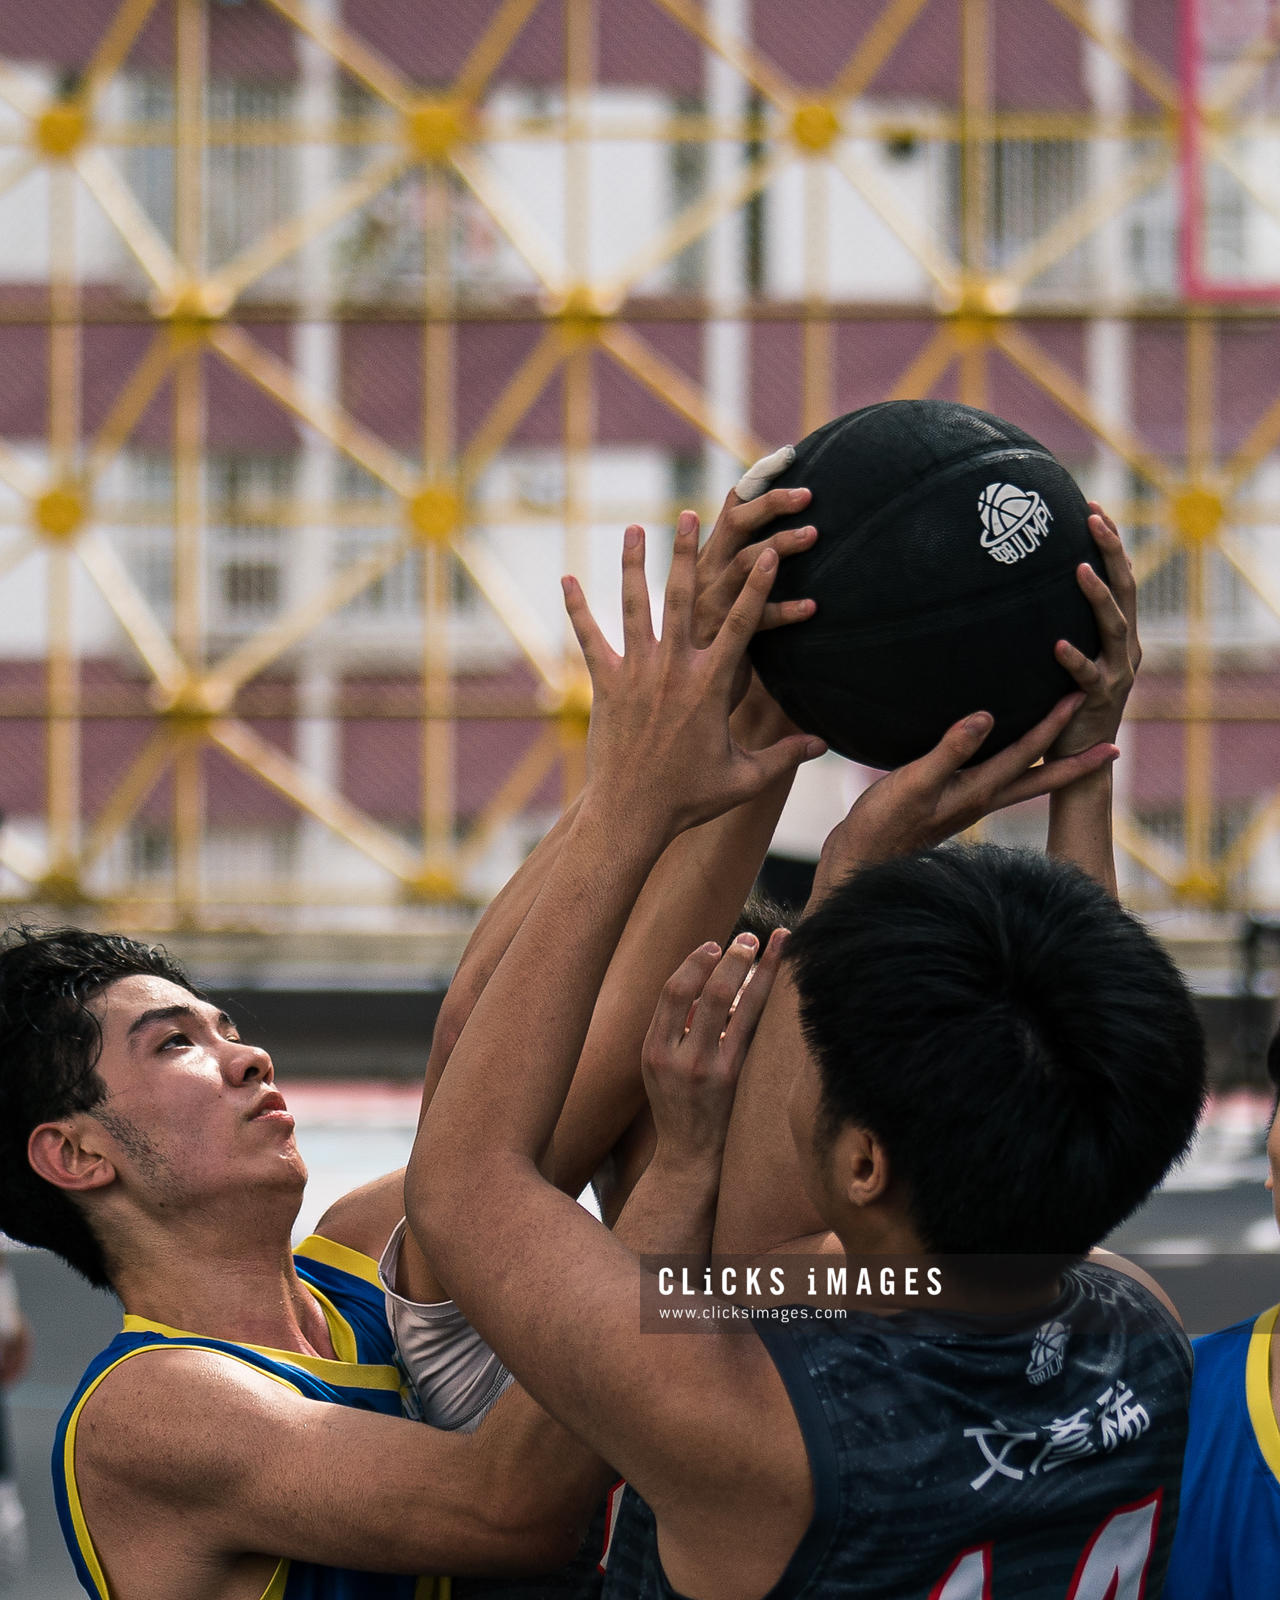 Hong Kong Estates Basketball Grand Finals